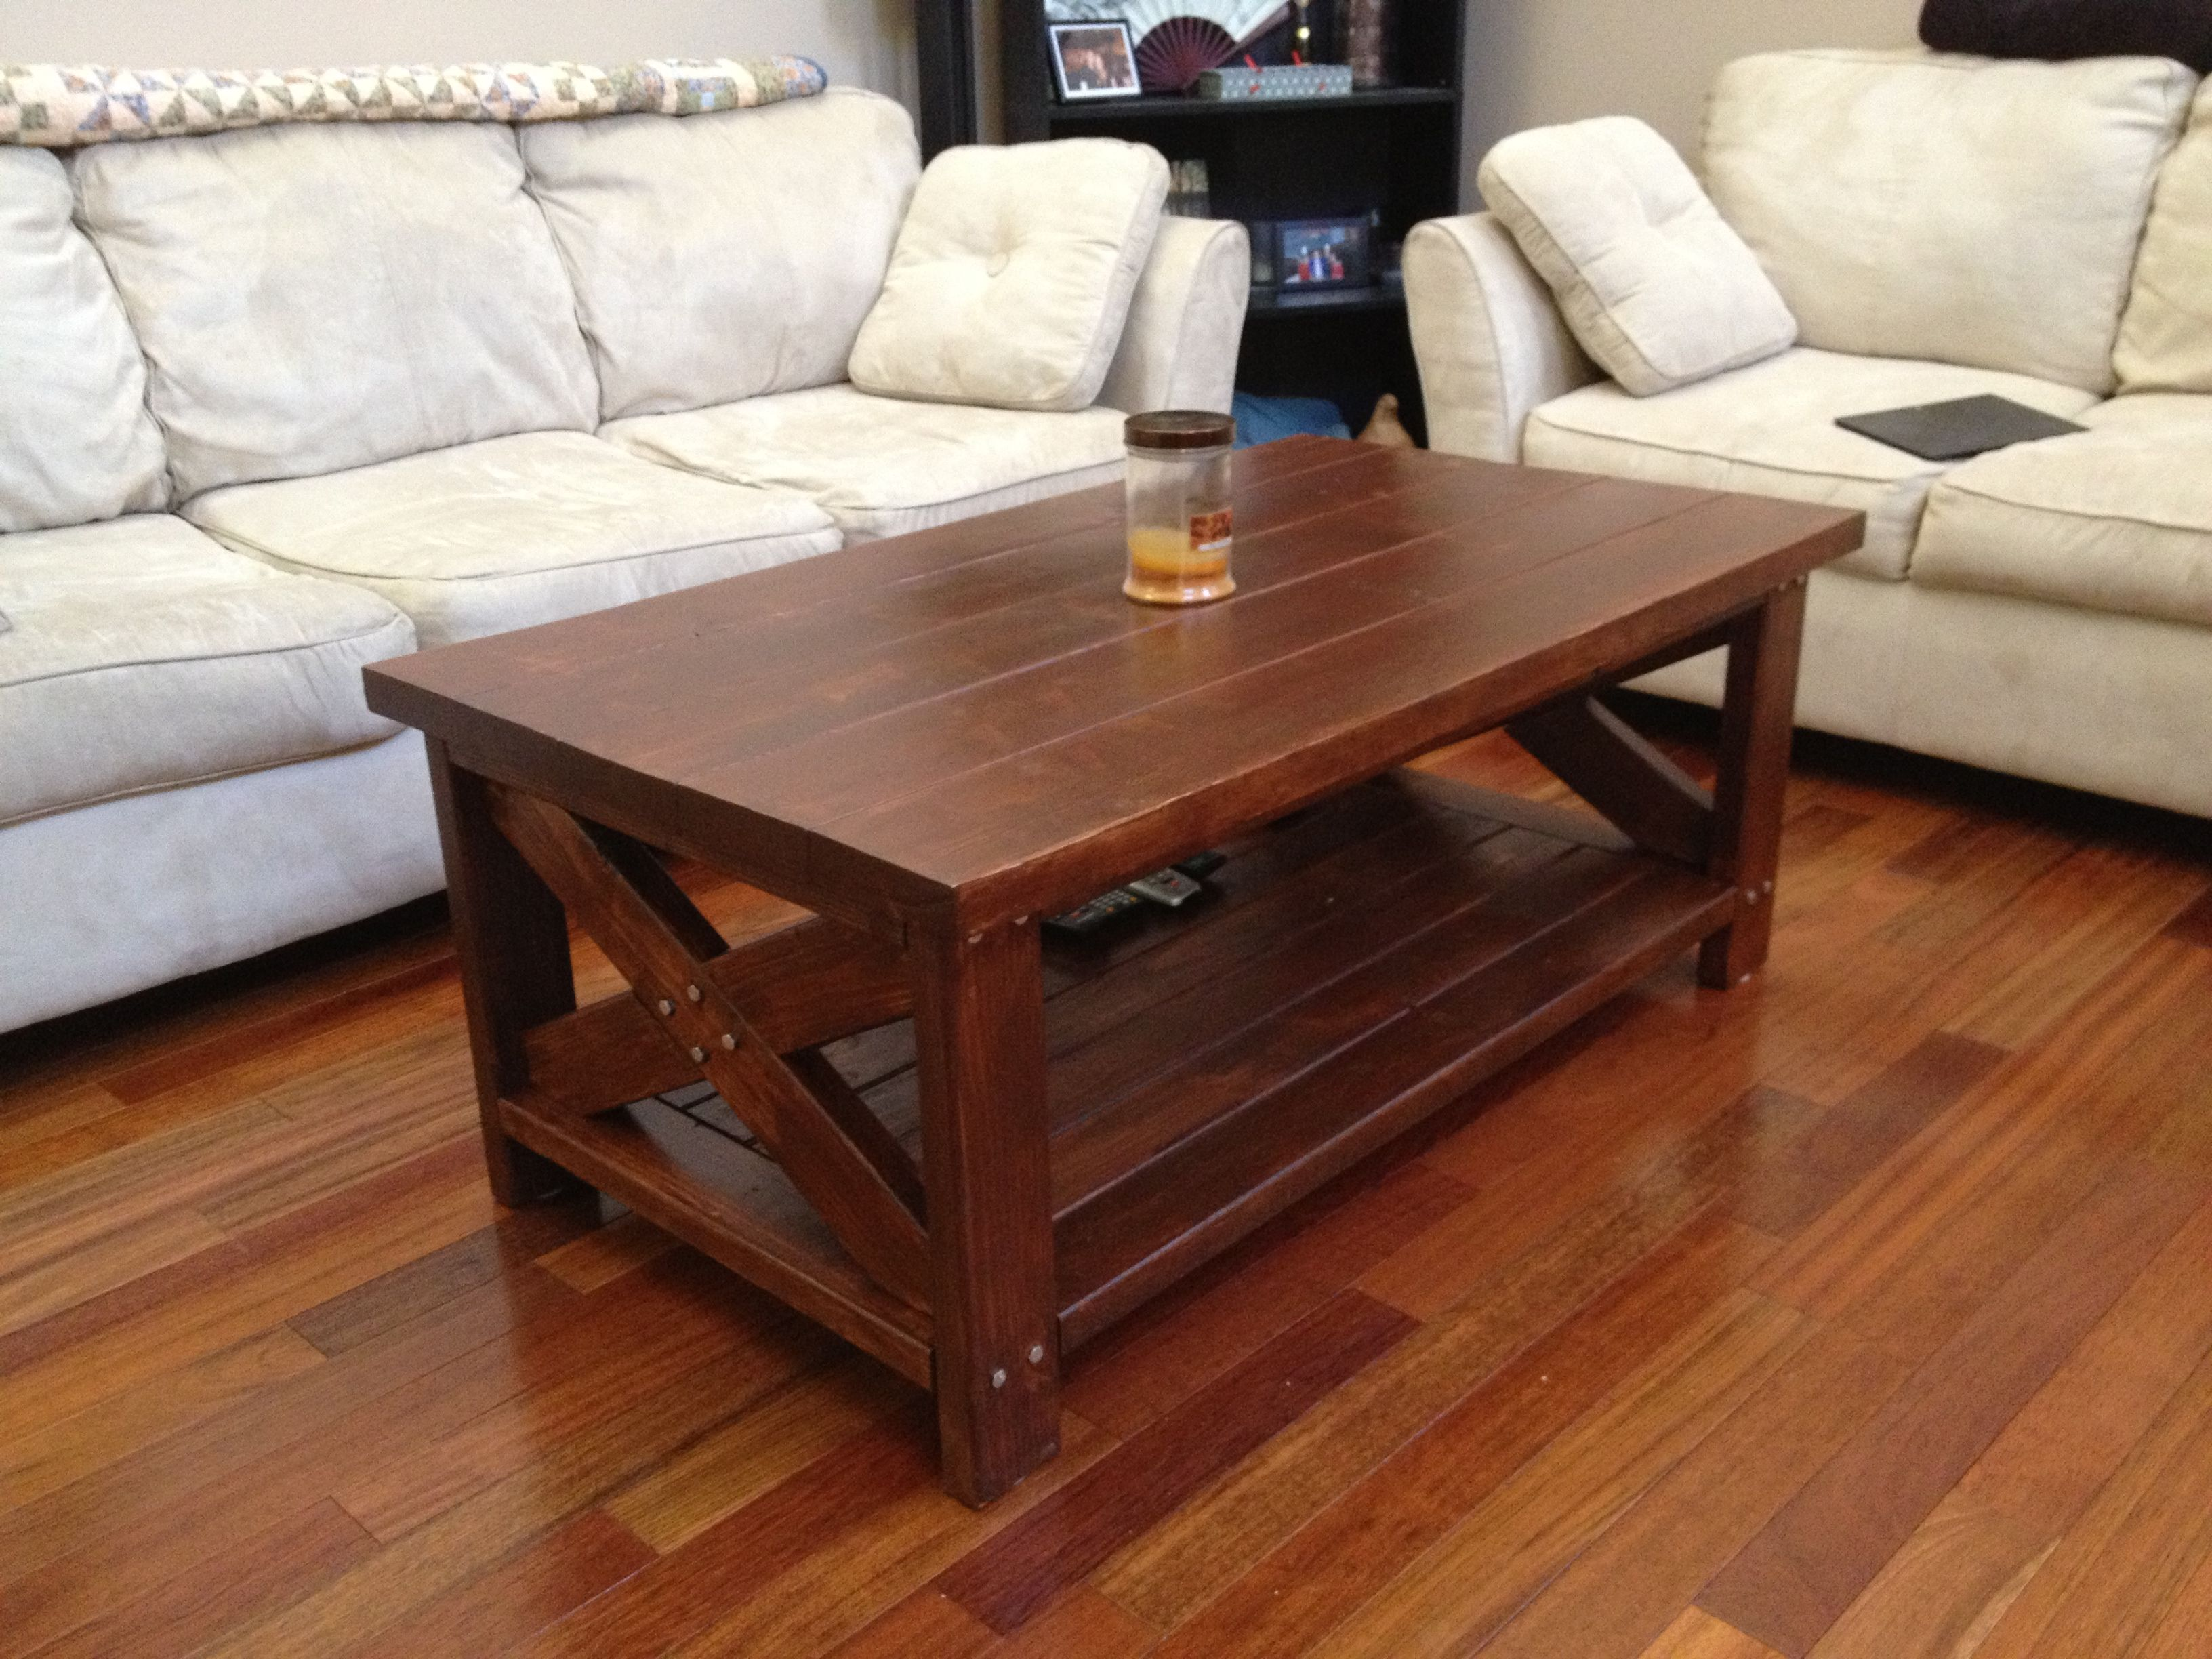 Rustic Farm Style Coffee Table, made from 2x4's and 2x6's